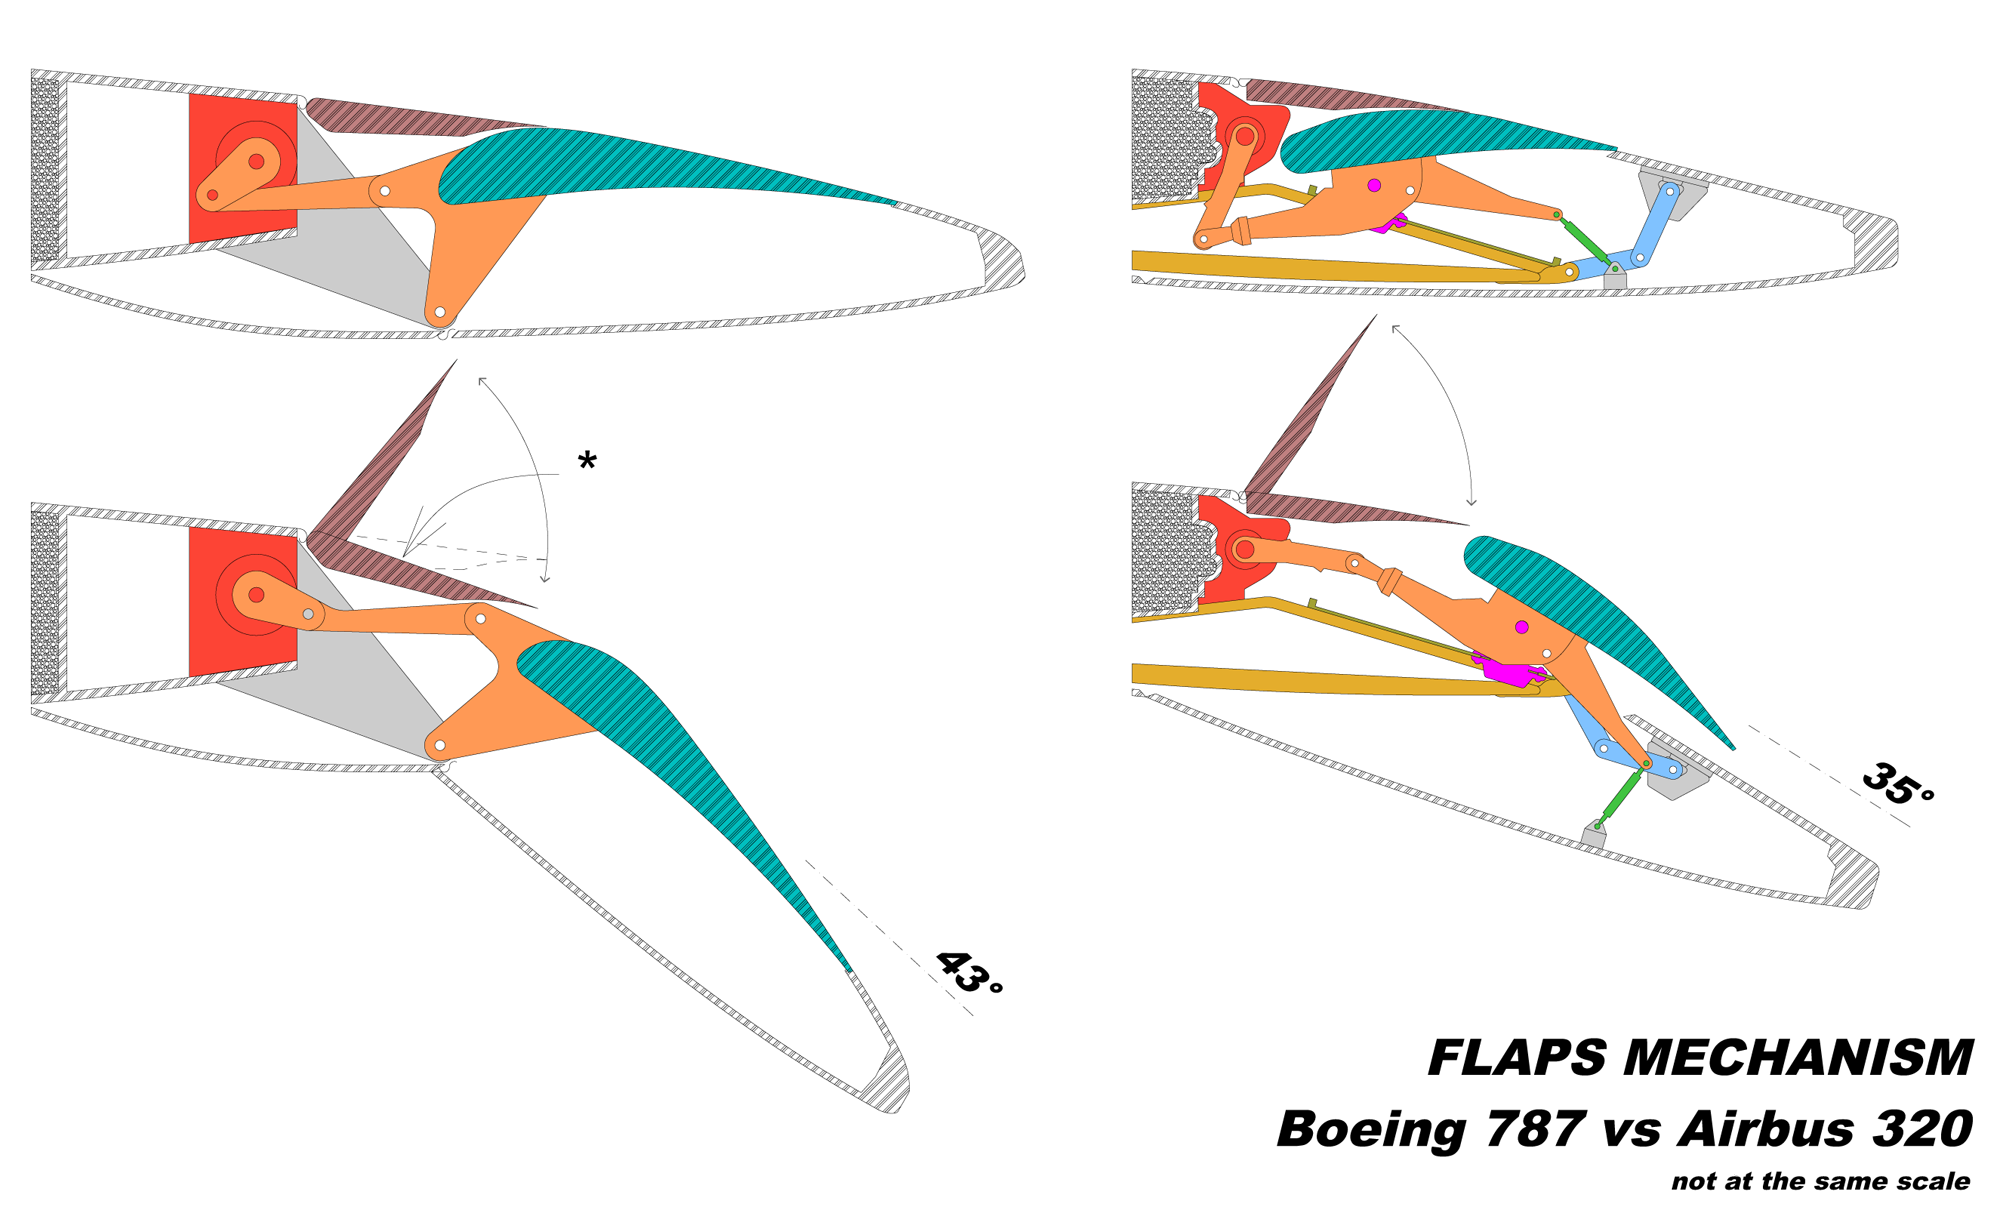 http://upload.wikimedia.org/wikipedia/commons/5/51/Flaps_Mechanism_B787_A320.png